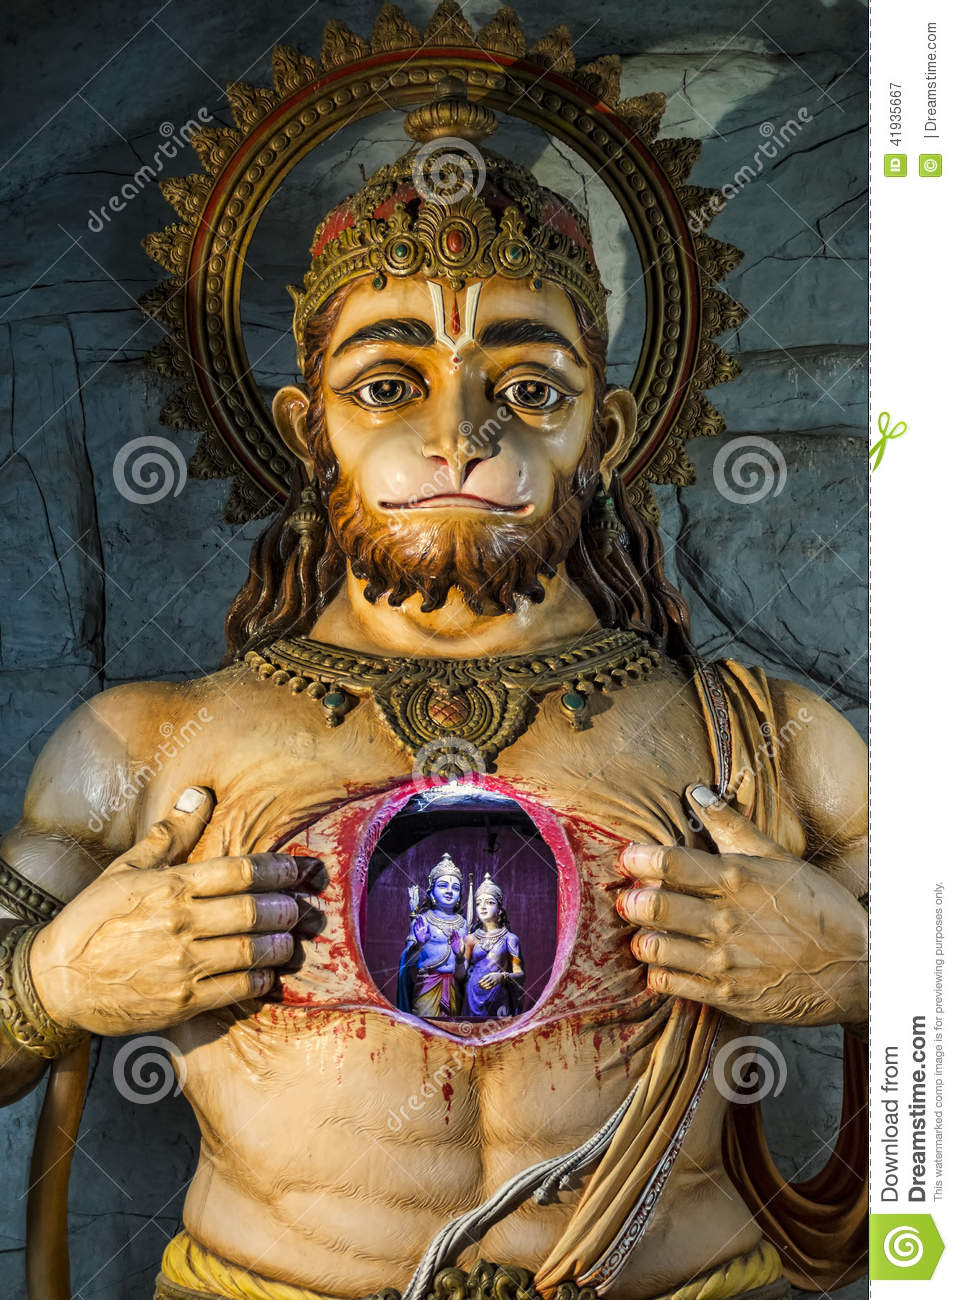 Illuminated Statue Of Hanuman Showing Rama And Sita Stock Image Image 41935667